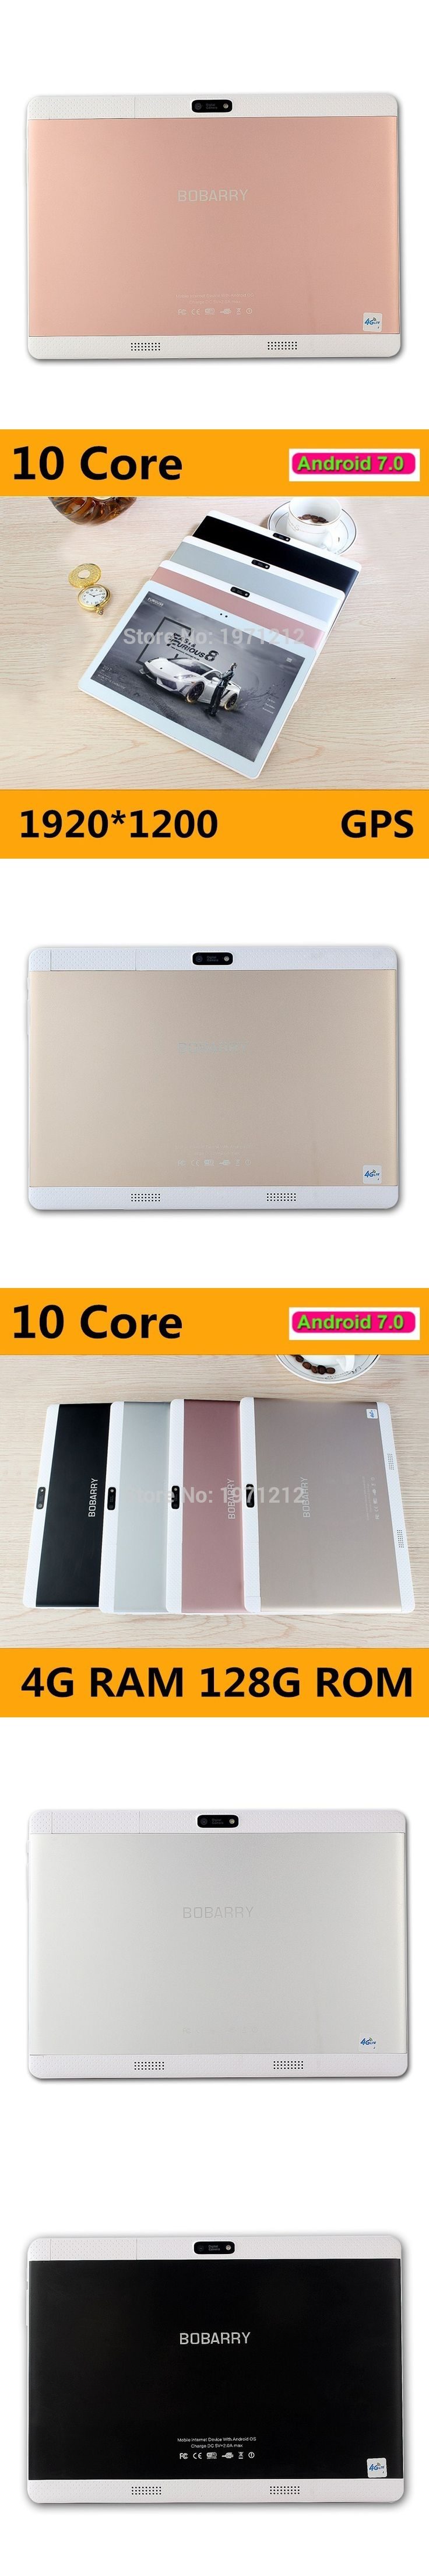 10.1 inch Deca Core 3G 4G Tablet Android 7.0 RAM 4GB ROM 128GB 8.0MP Dual SIM Card Bluetooth GPS Tablets 10.1 inch 4G tablet pc